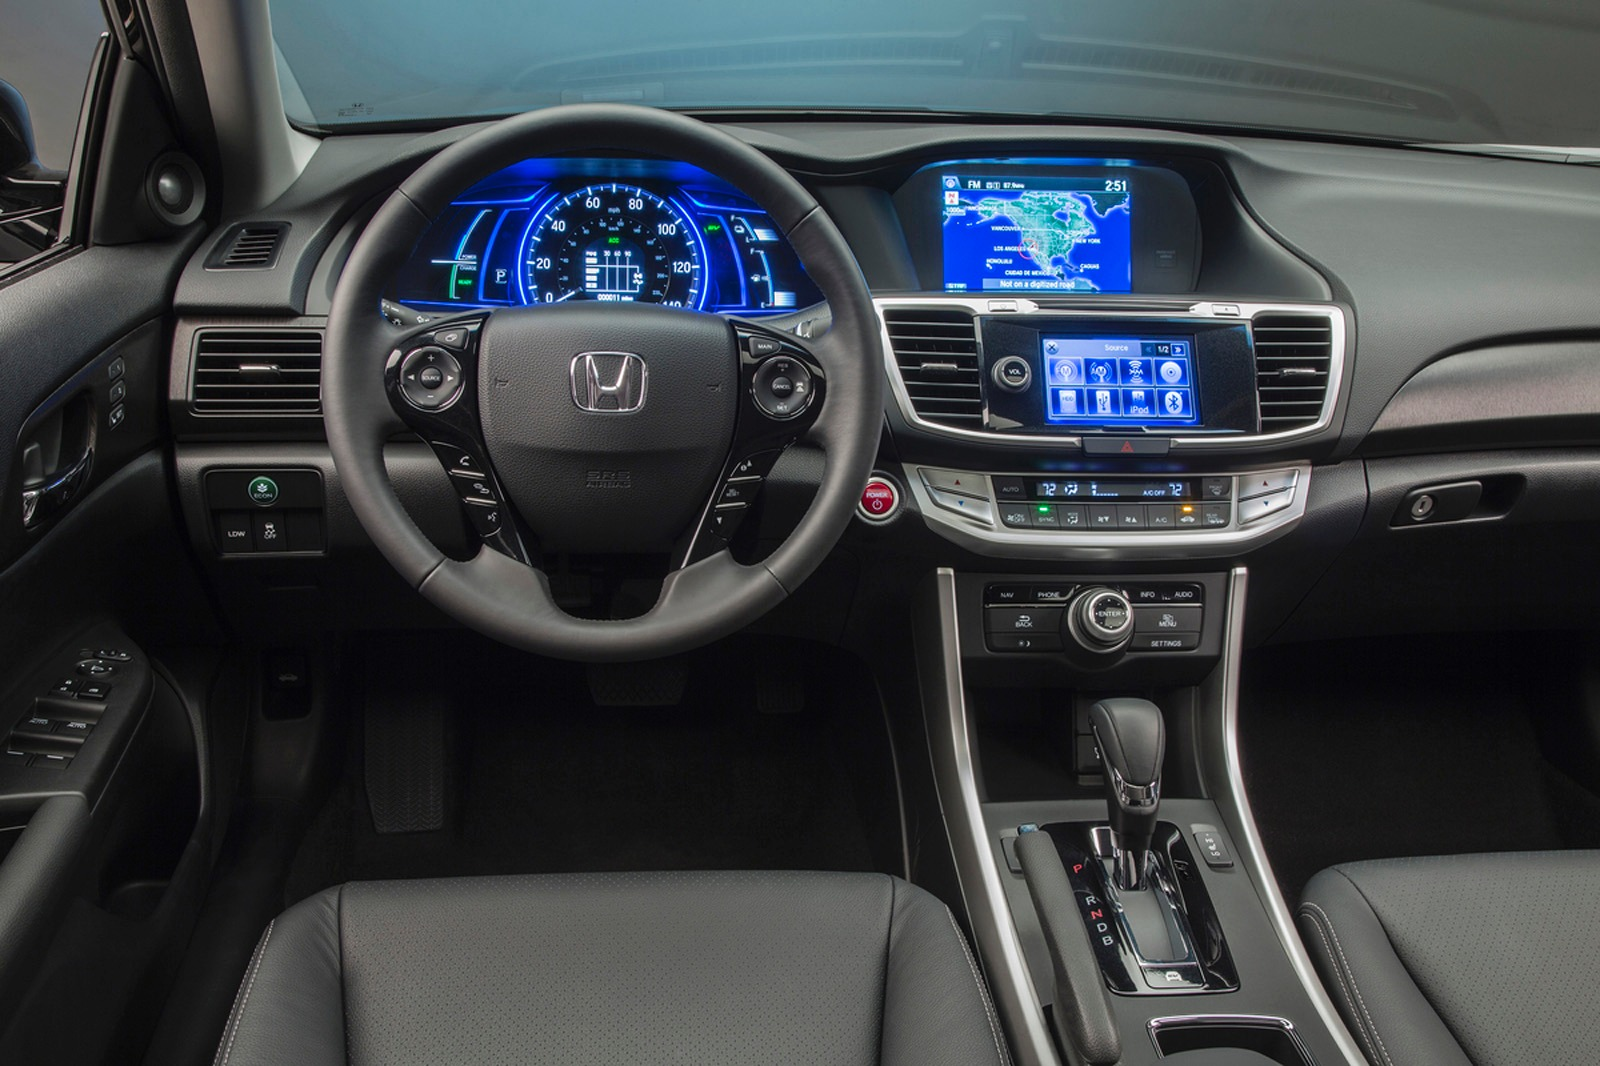 2015 Honda Accord Interior | TOPCARZ.US